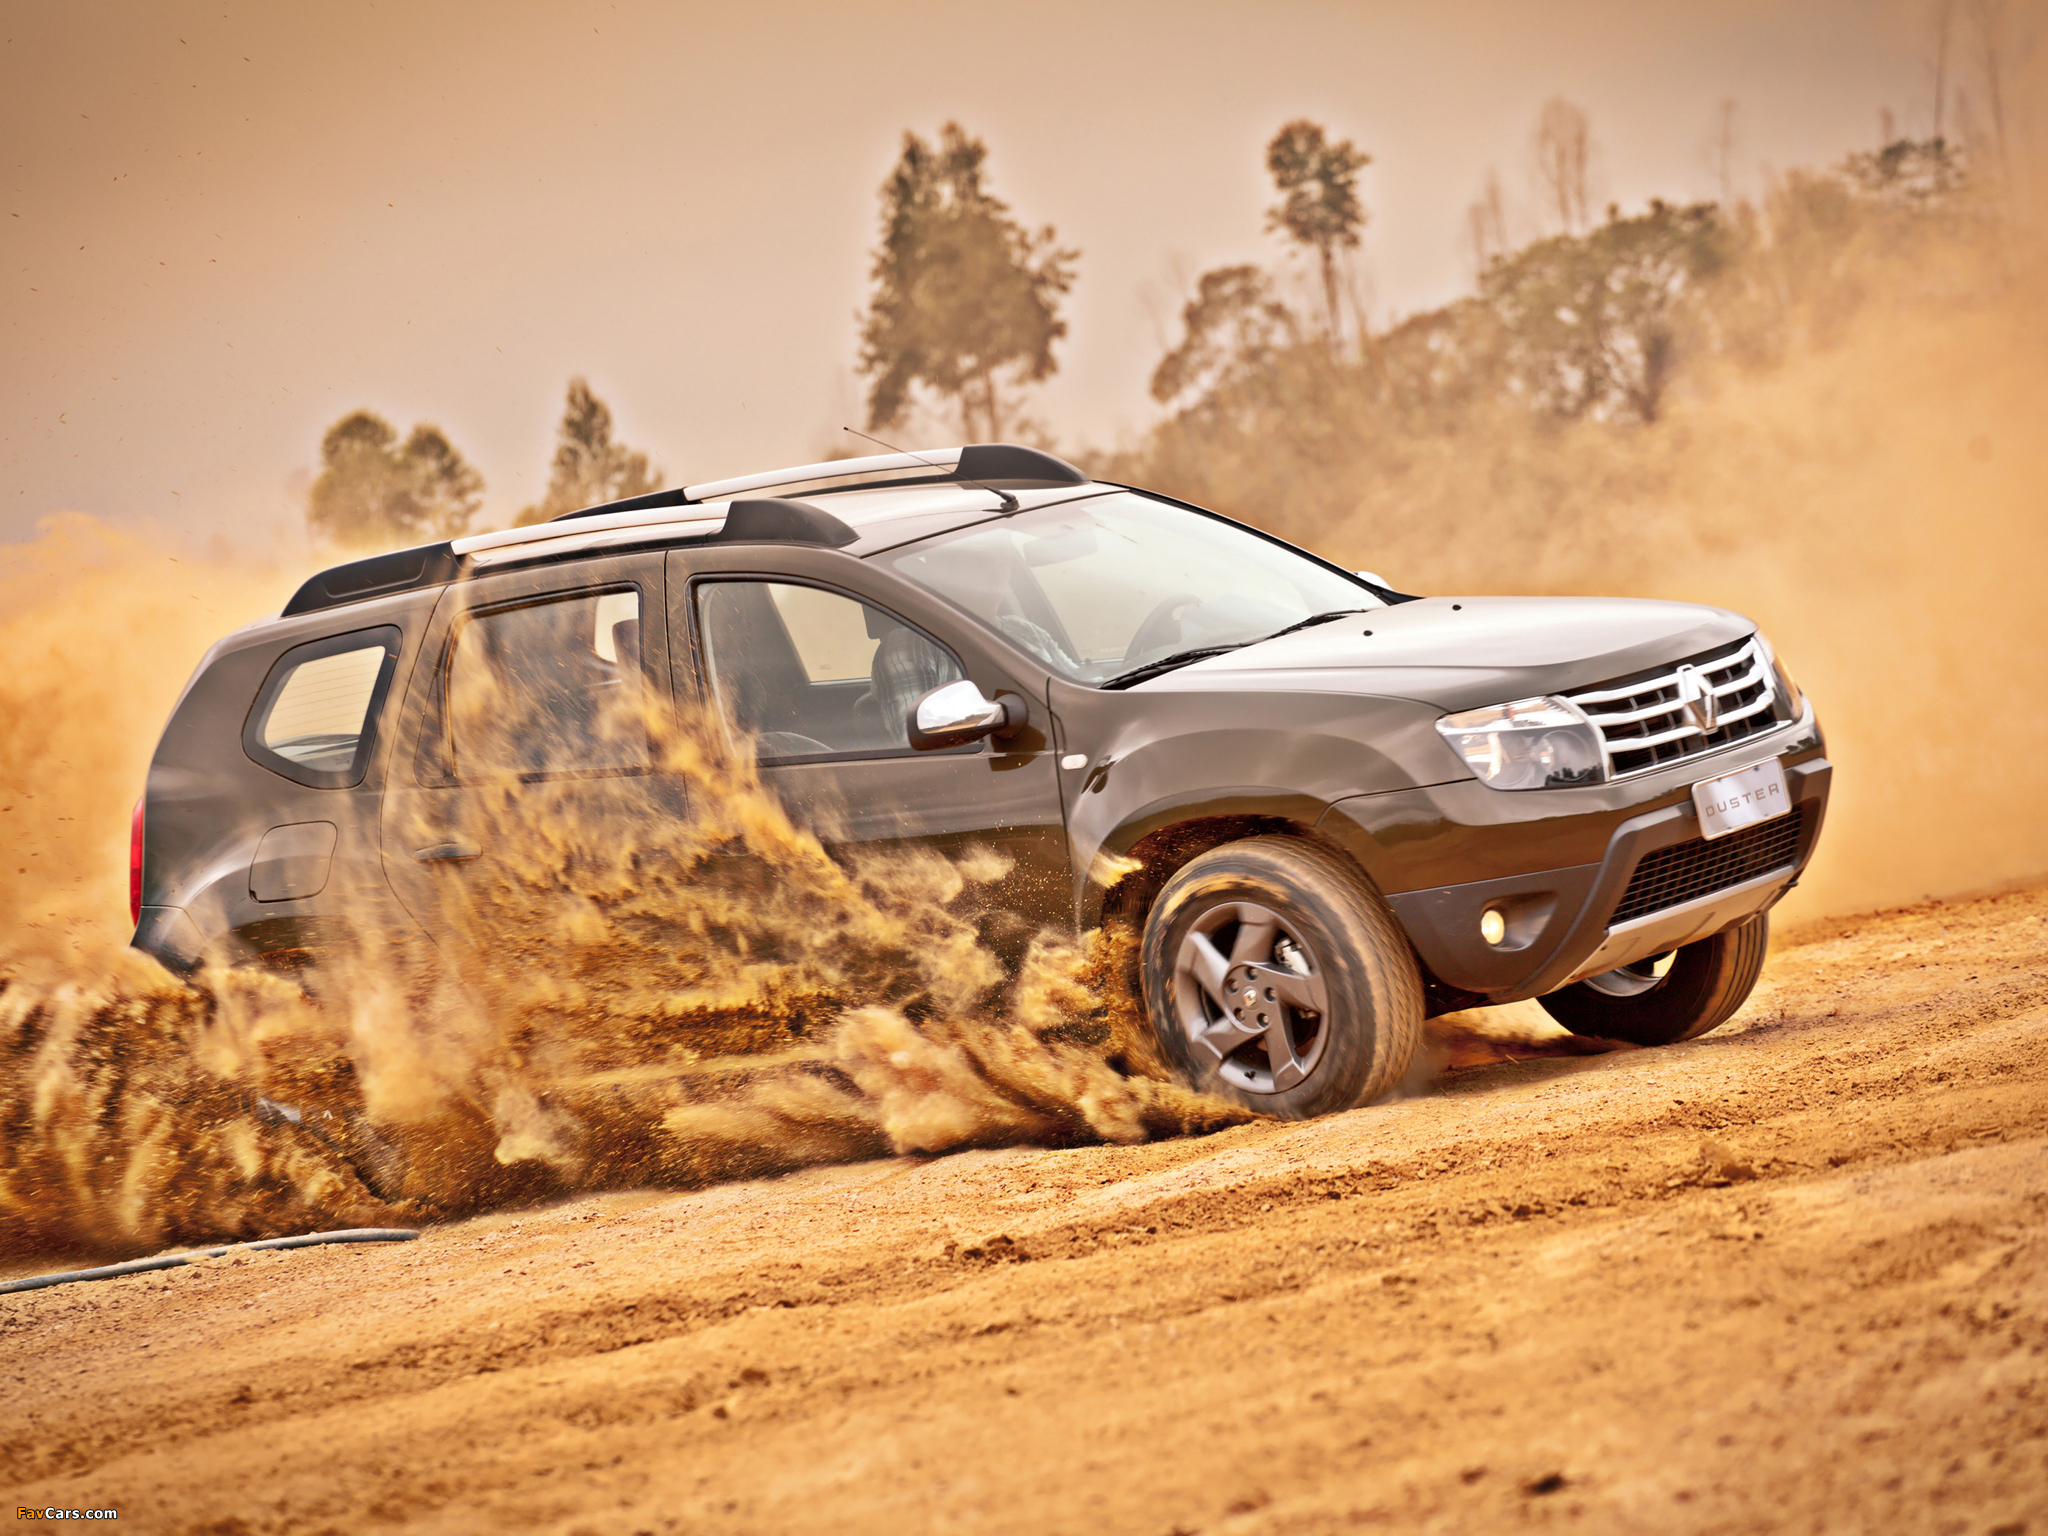 Of renault duster 2010 images of renault duster 2010 voltagebd Images